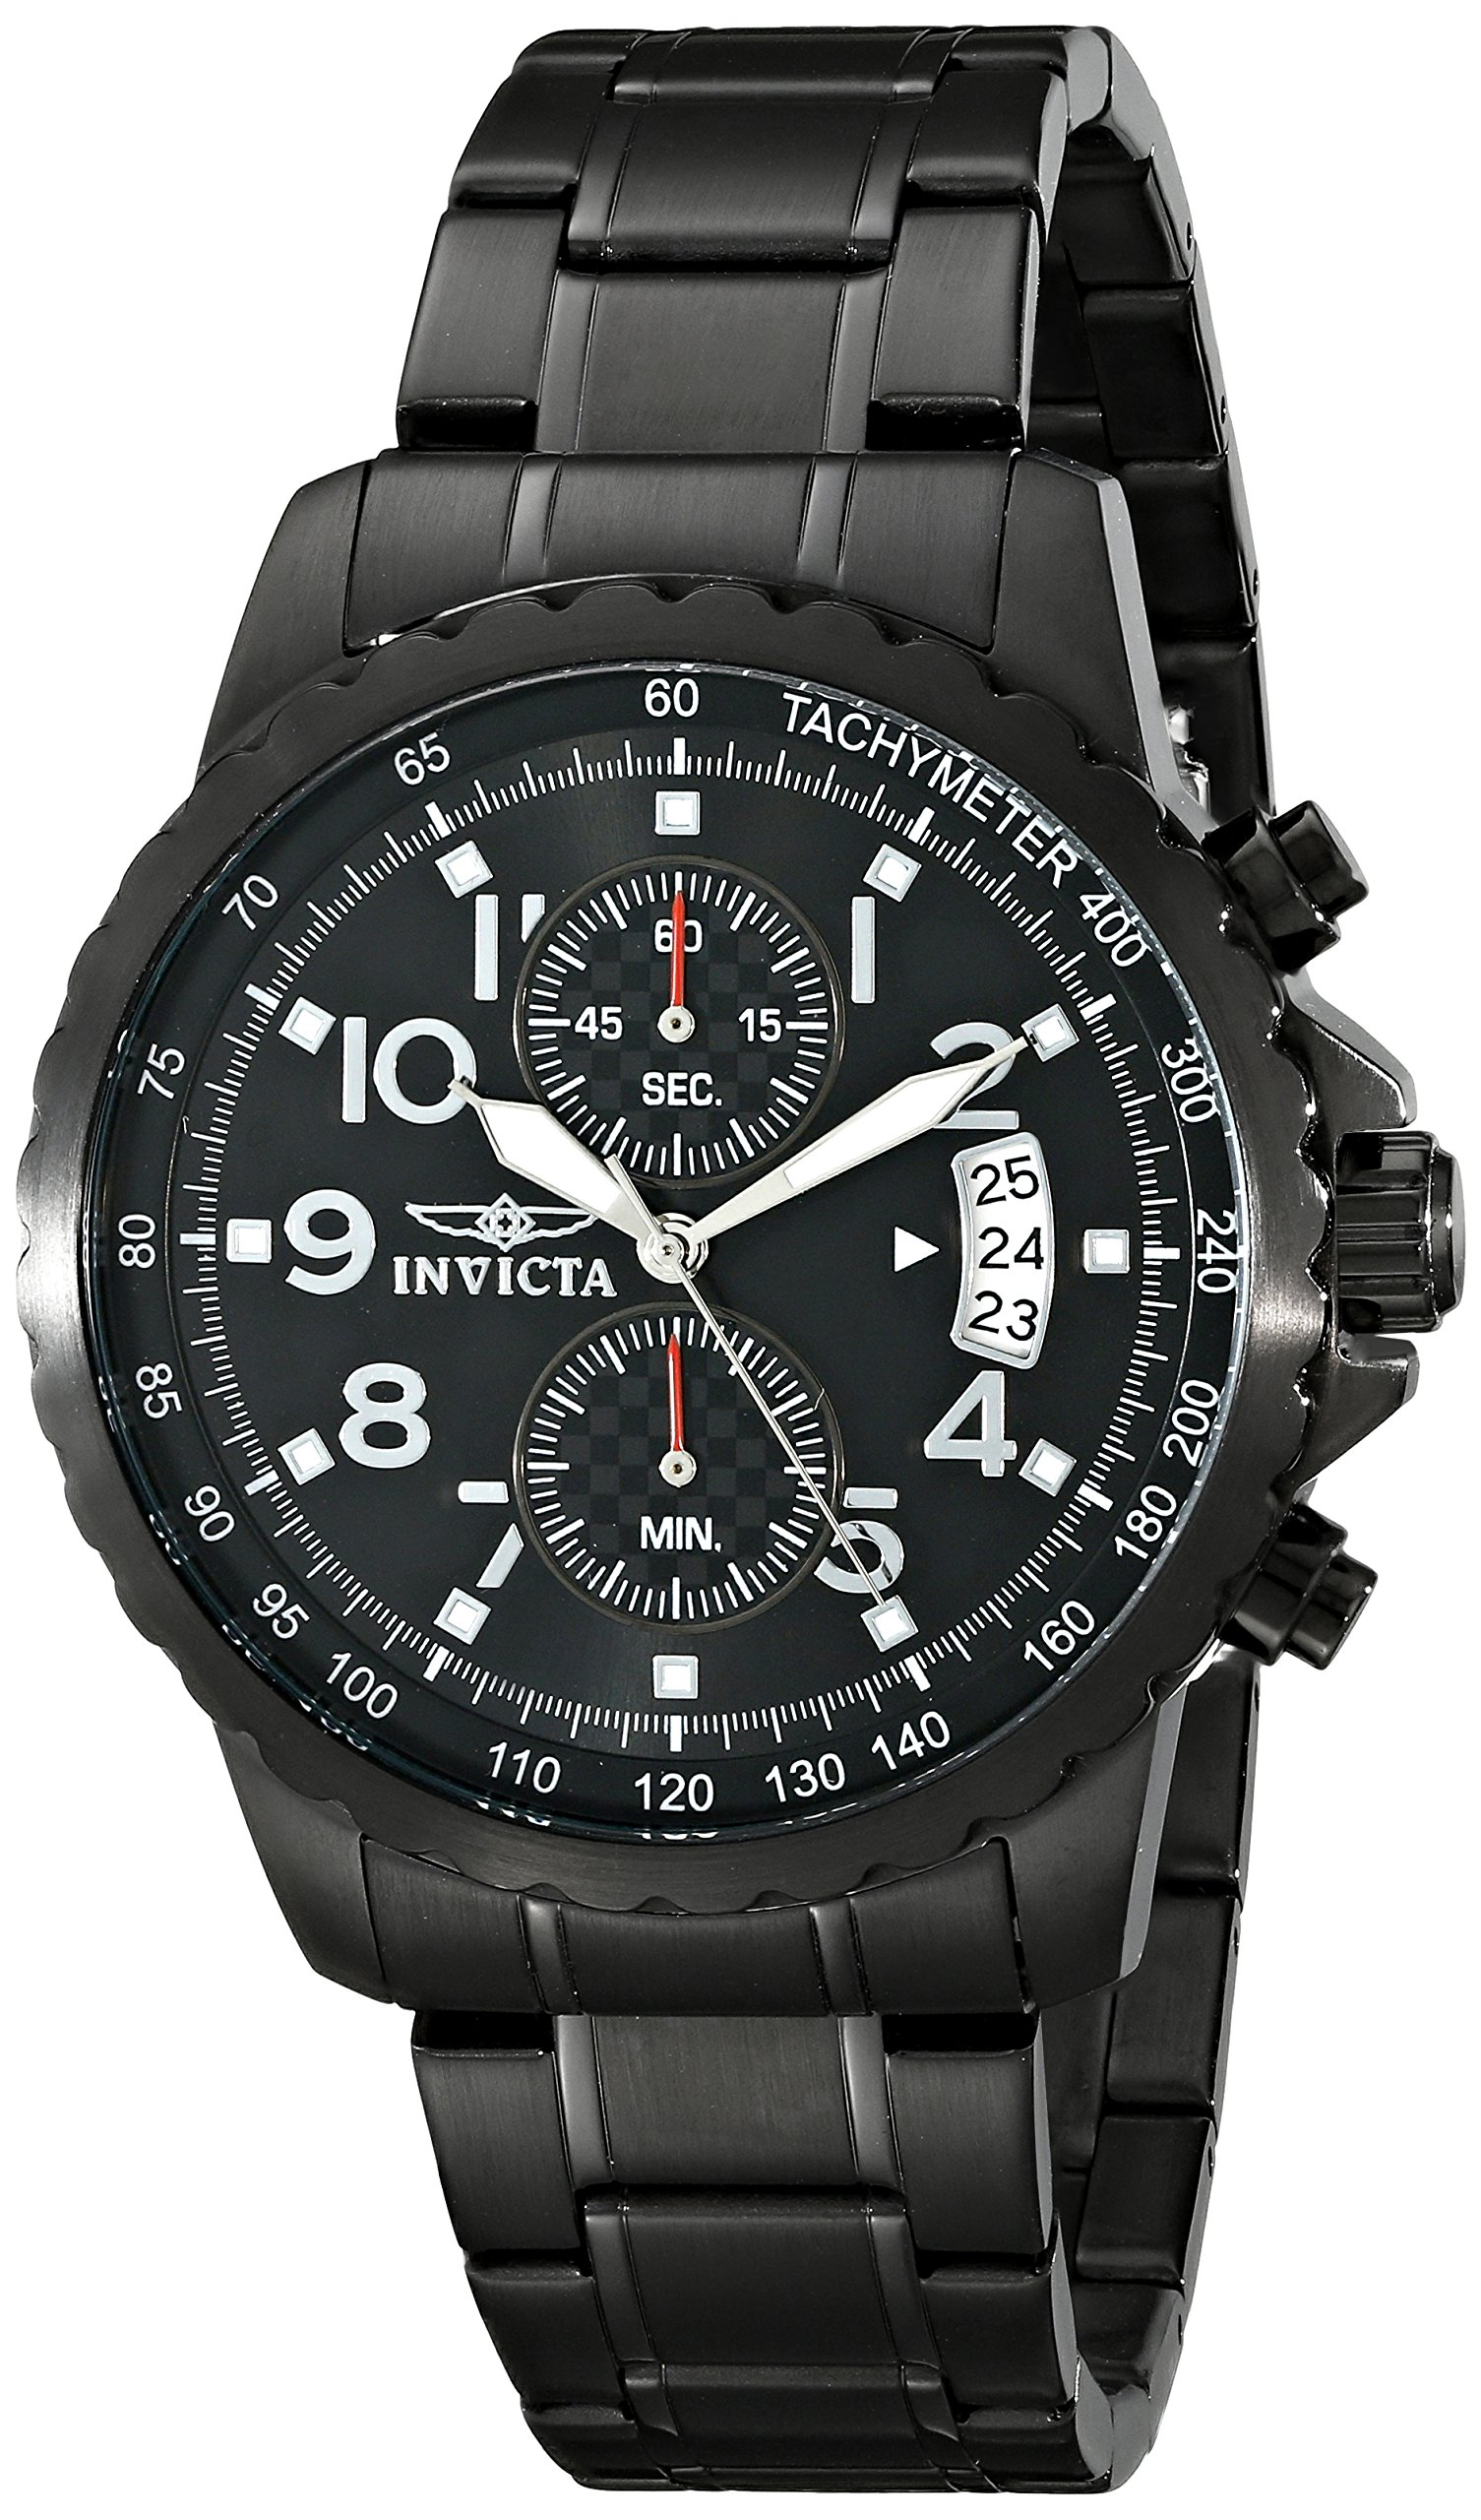 Invicta Men's 13787 Specialty Black Ion-Plated Stainless Steel Watch by Invicta